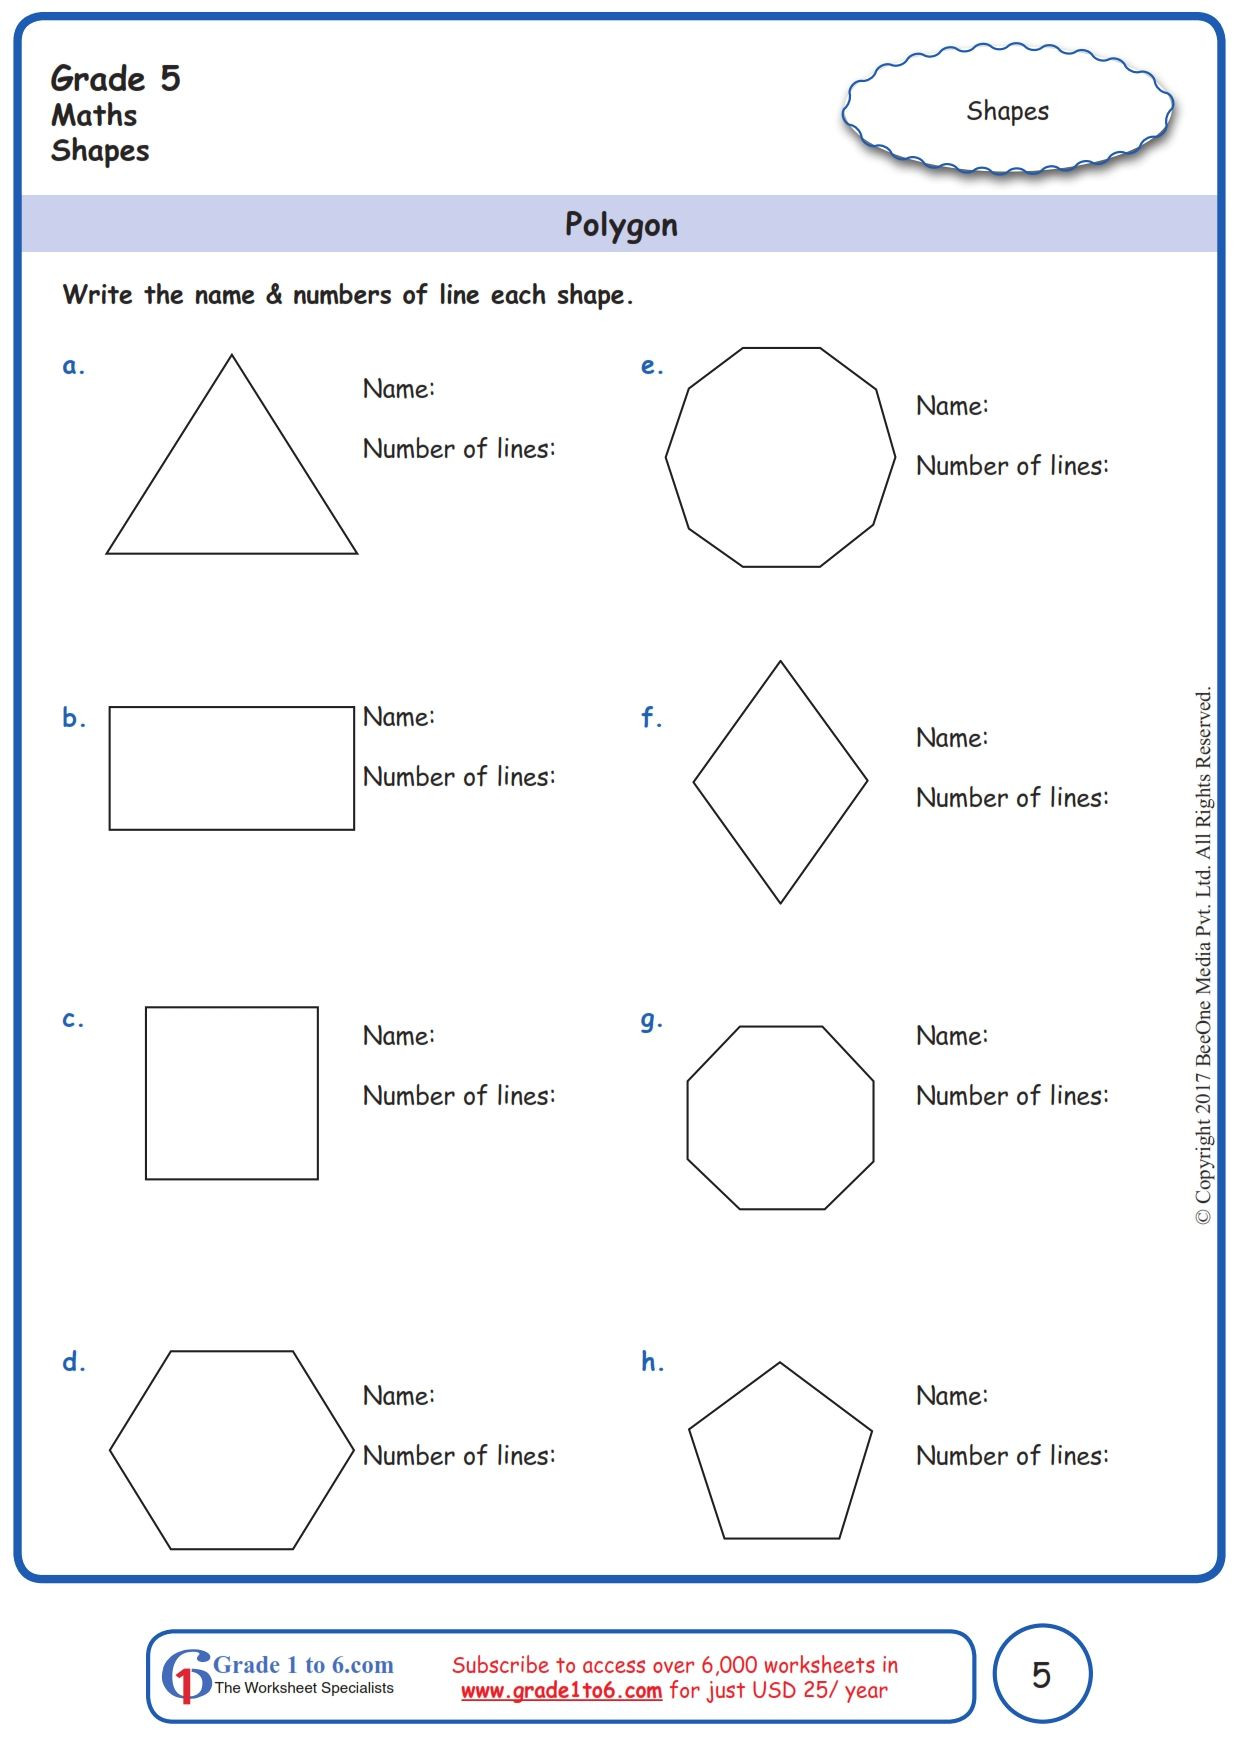 6th Grade Geometry Worksheets Free Volume Worksheets Grade 6 Math Geometry